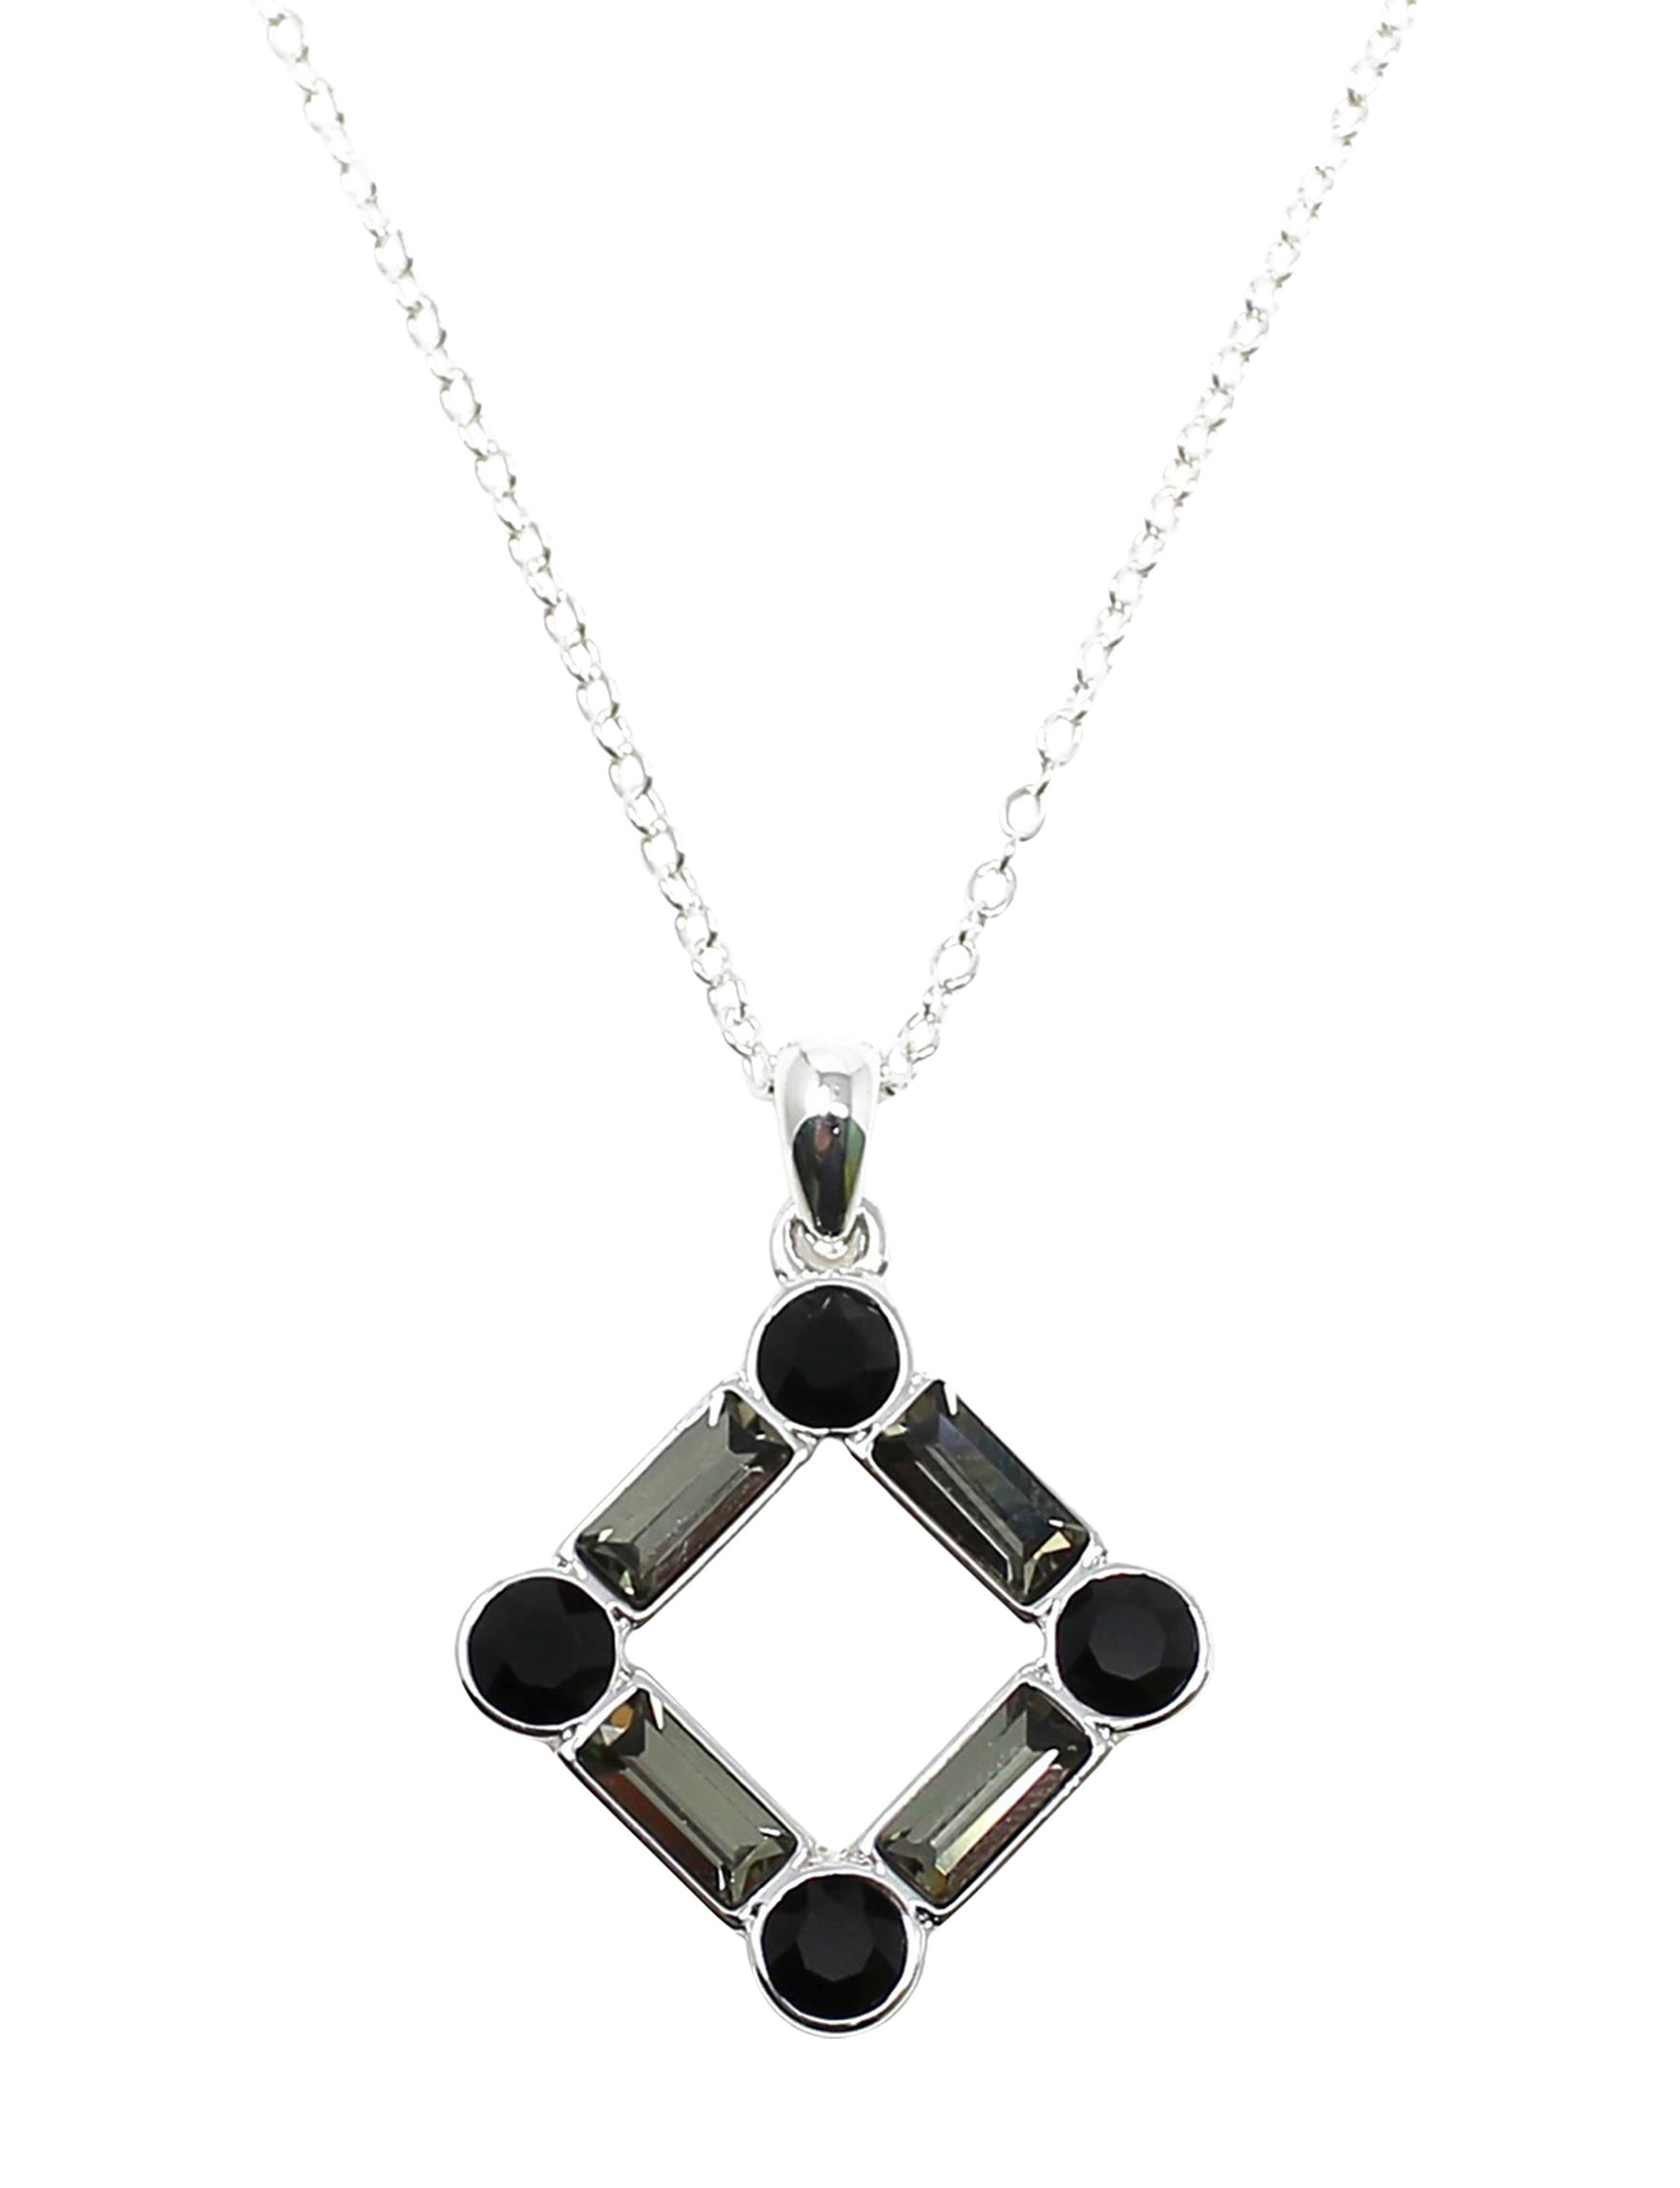 L & J Black Crystal Necklaces & Pendants Fine Jewelry